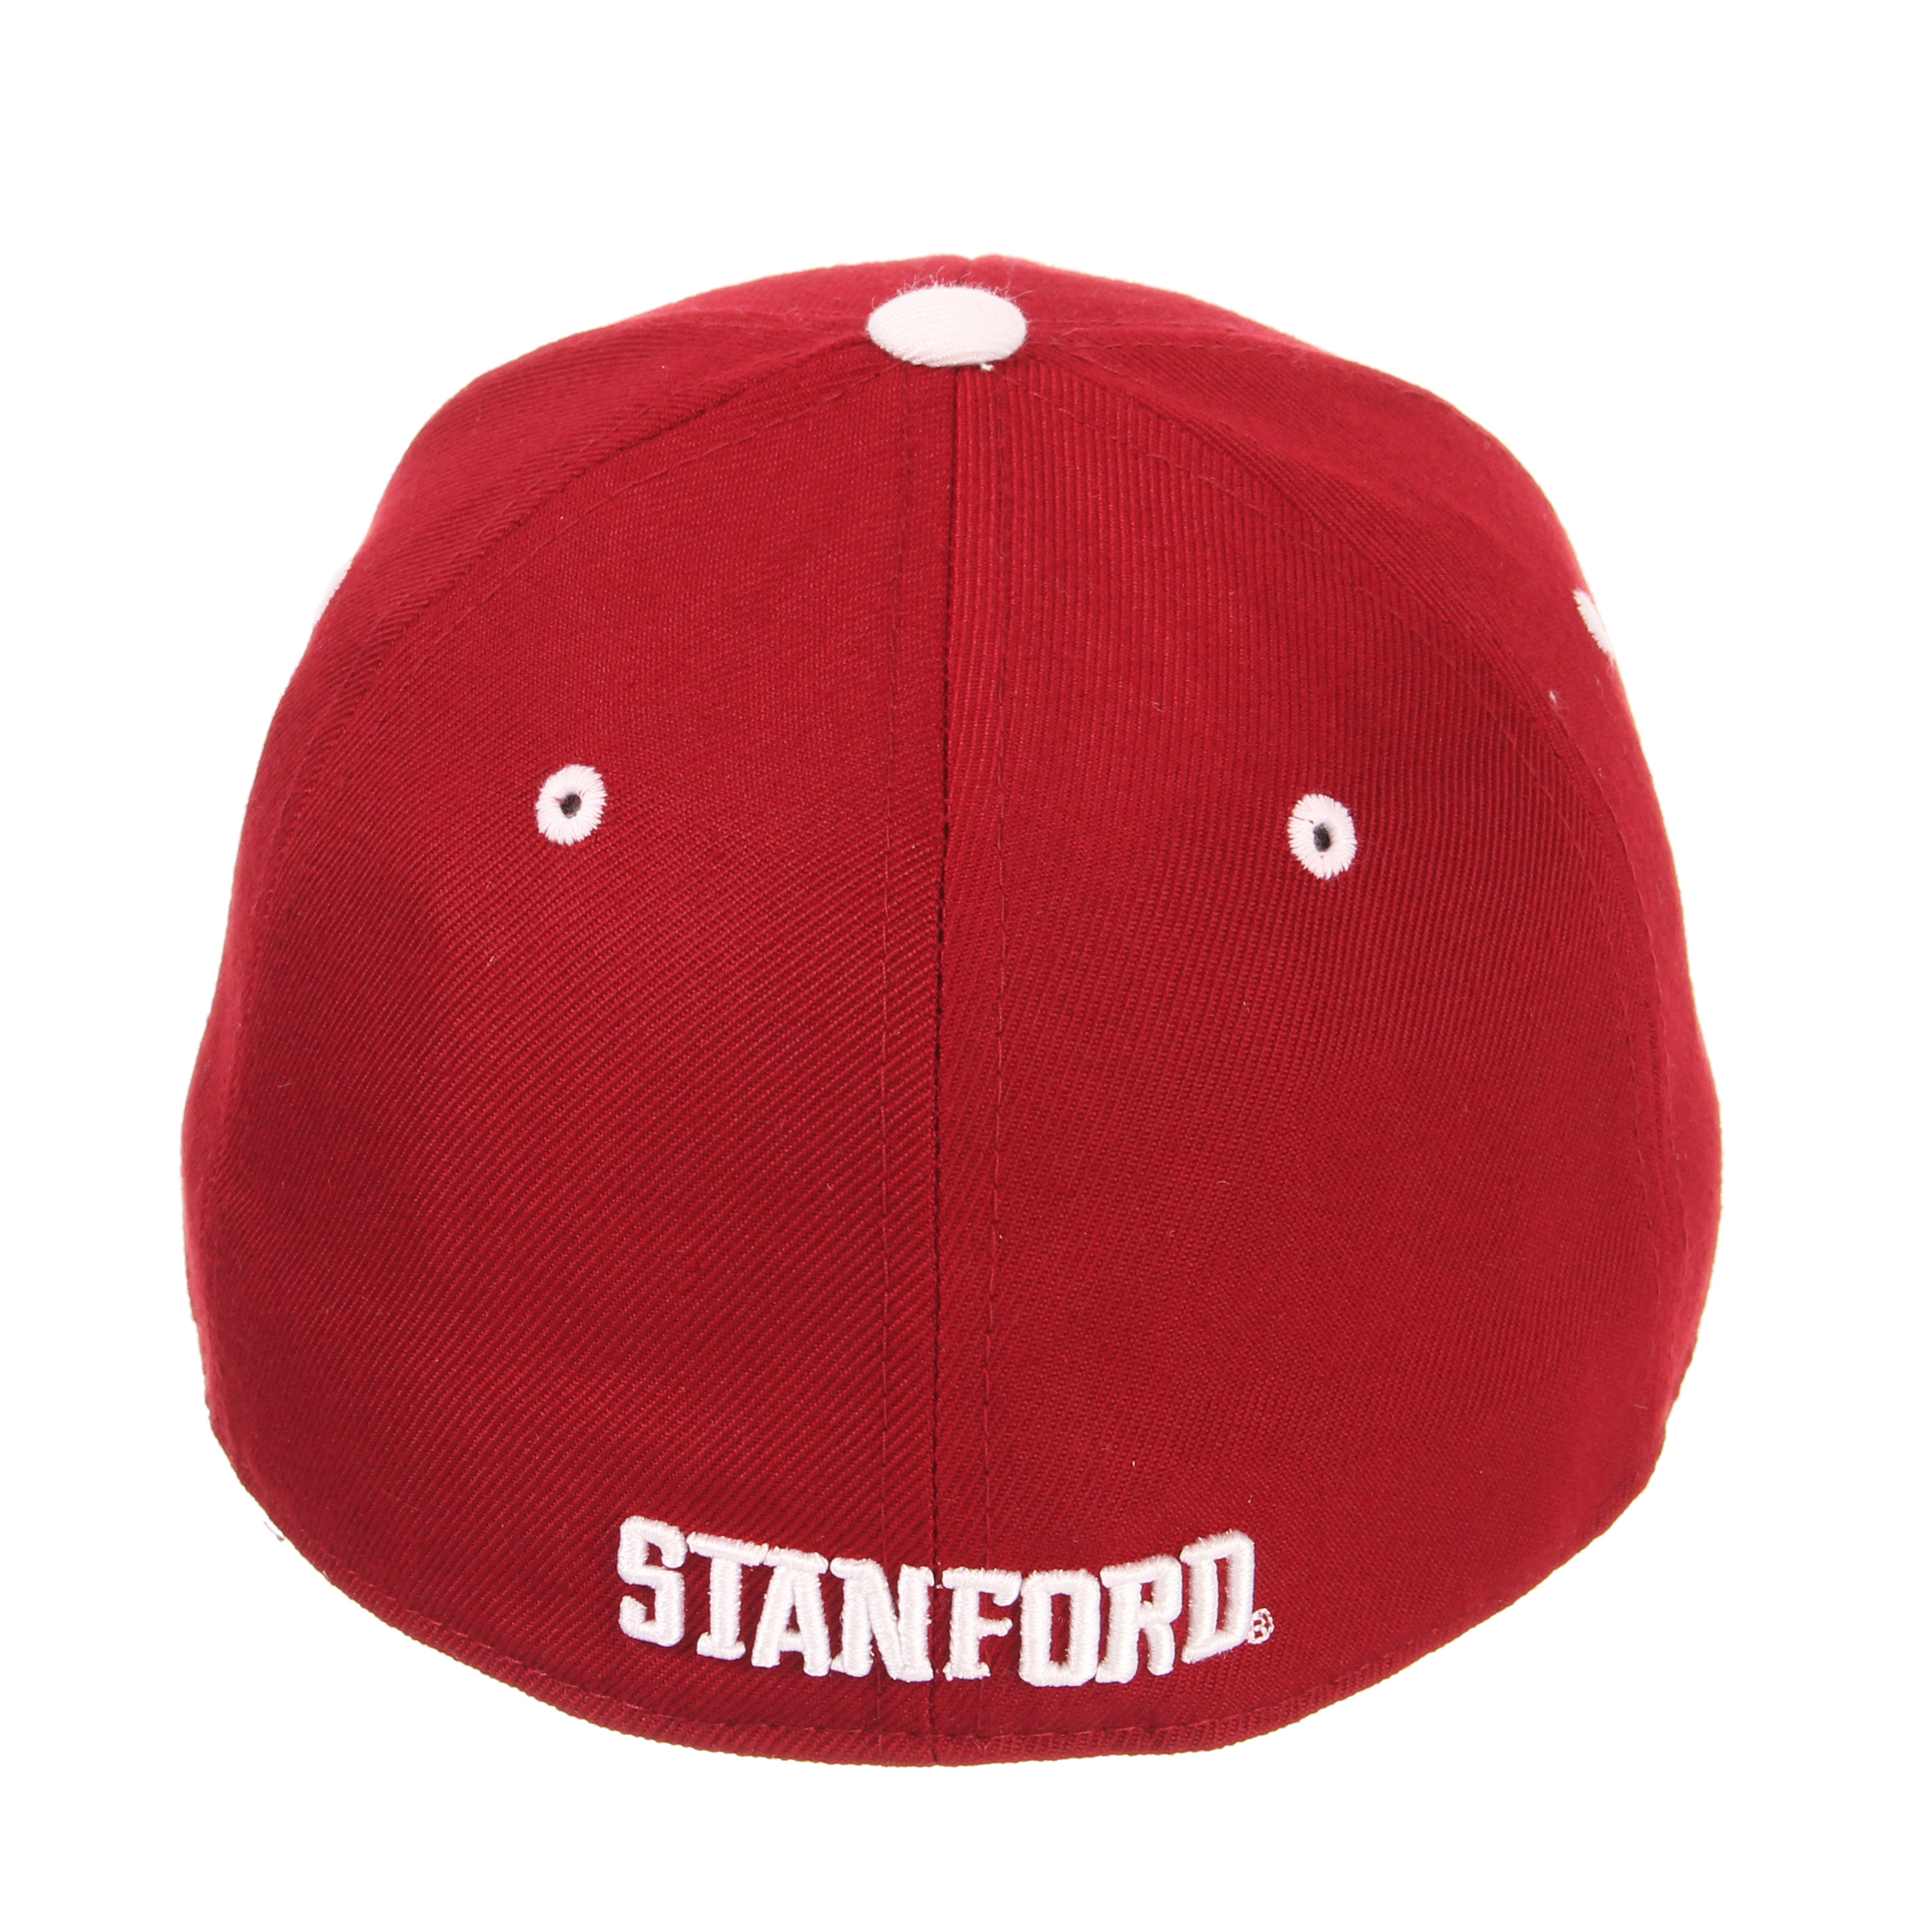 Stanford DHS